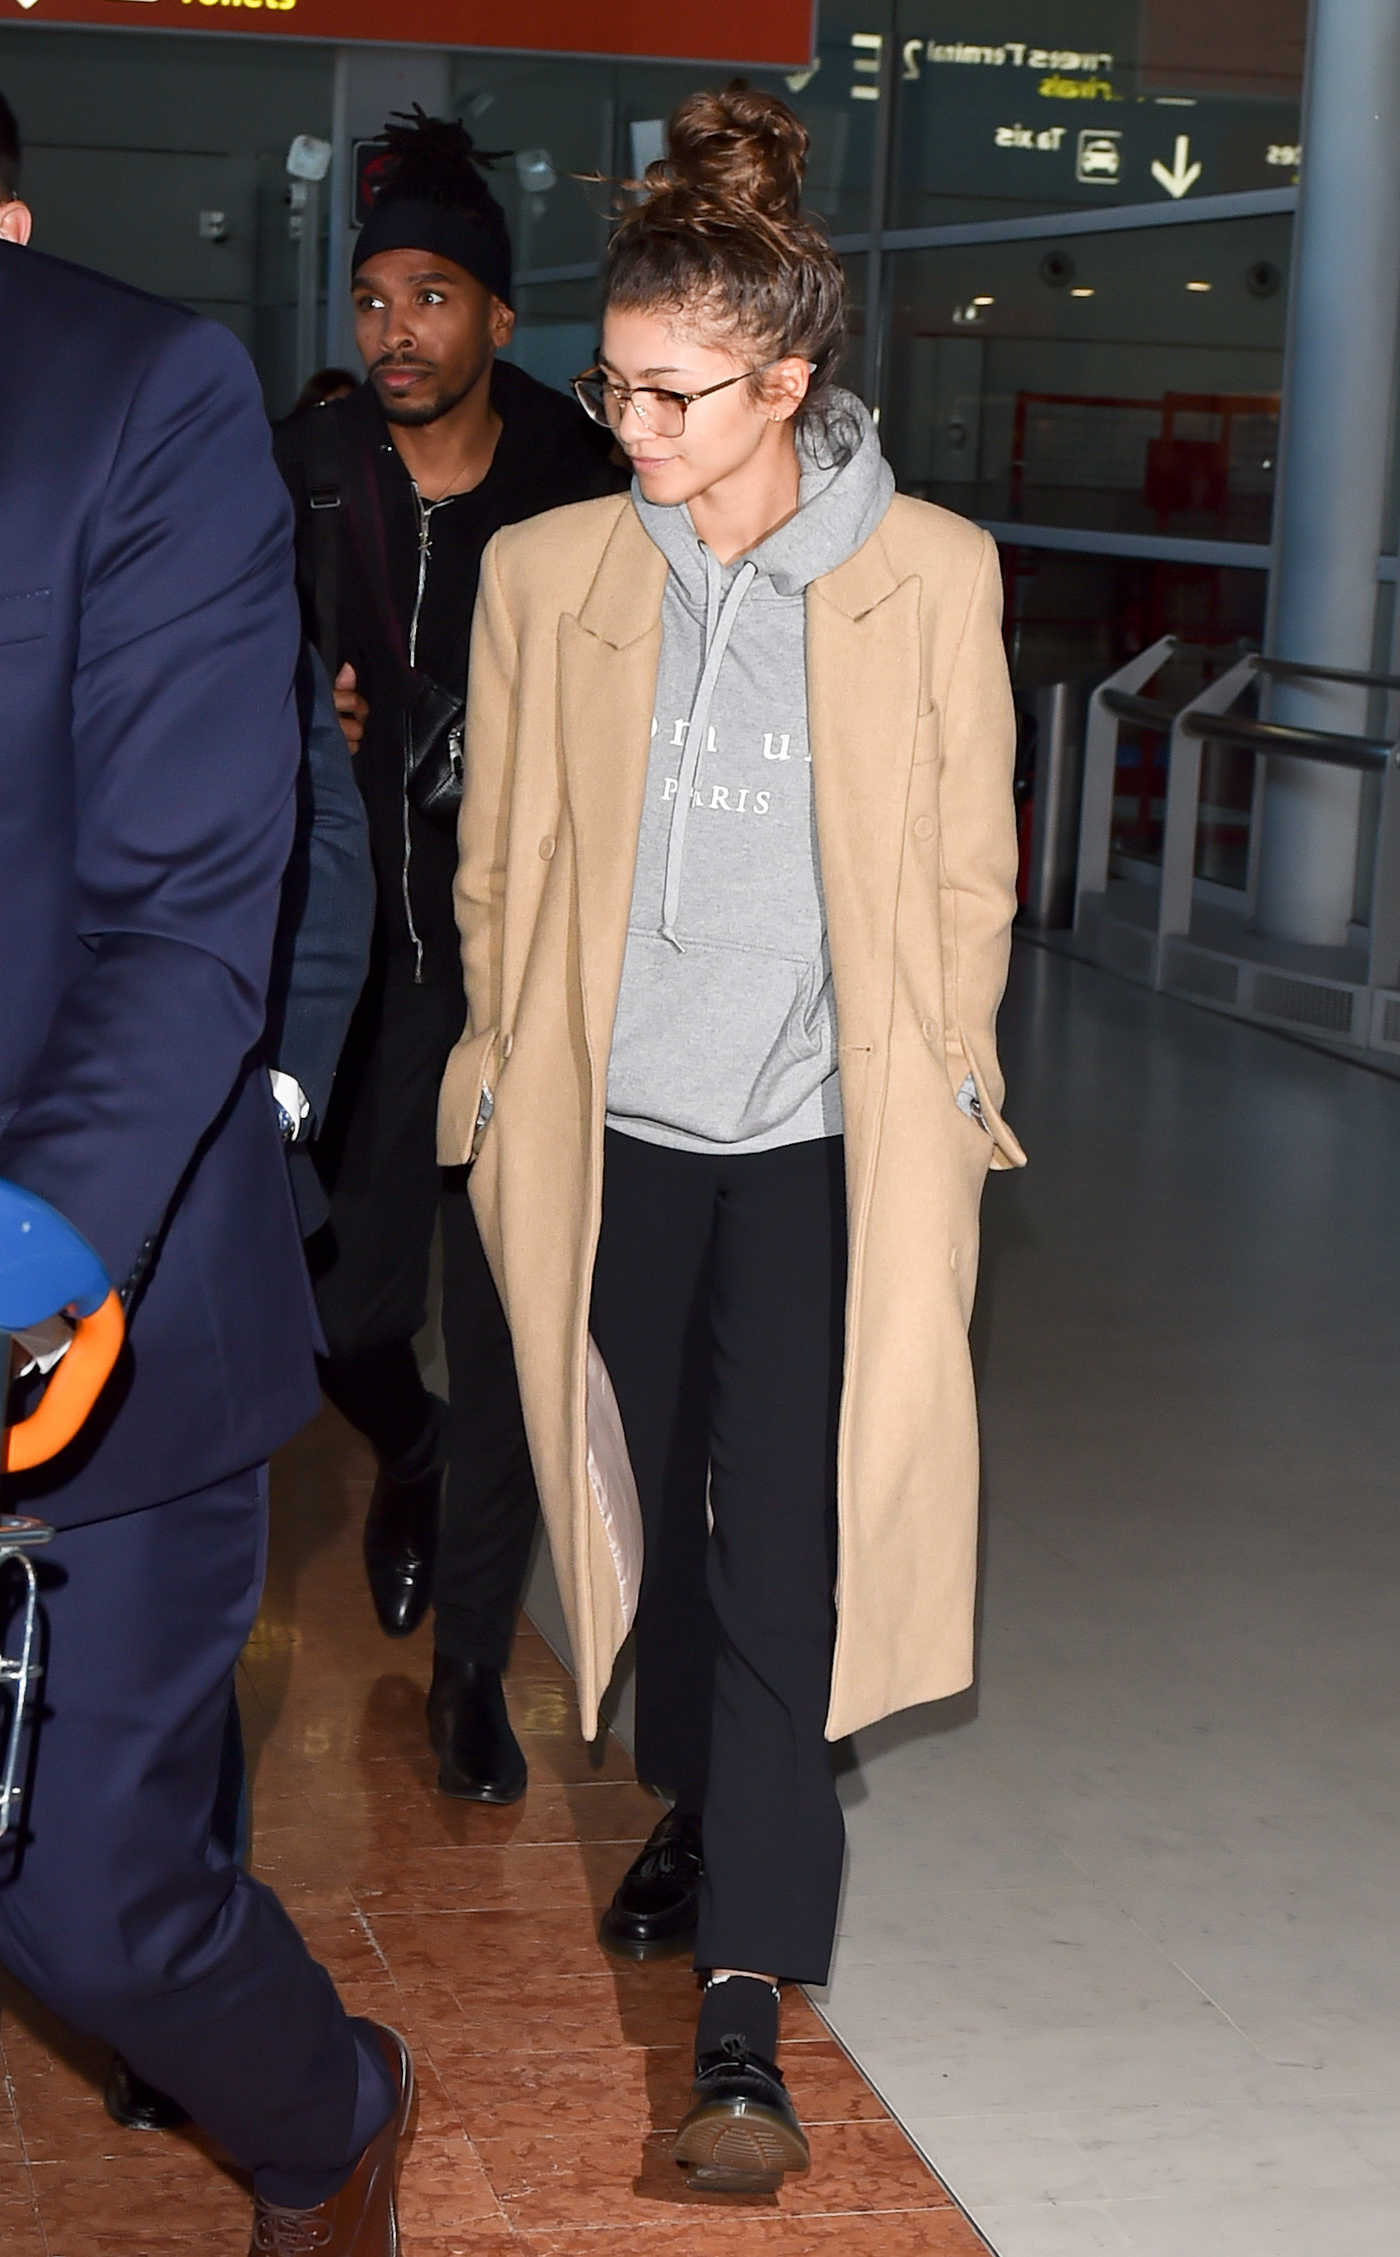 Zendaya in a Beige Coat Was Seen at Charles De Gaulle Airport in Paris 02/26/2019